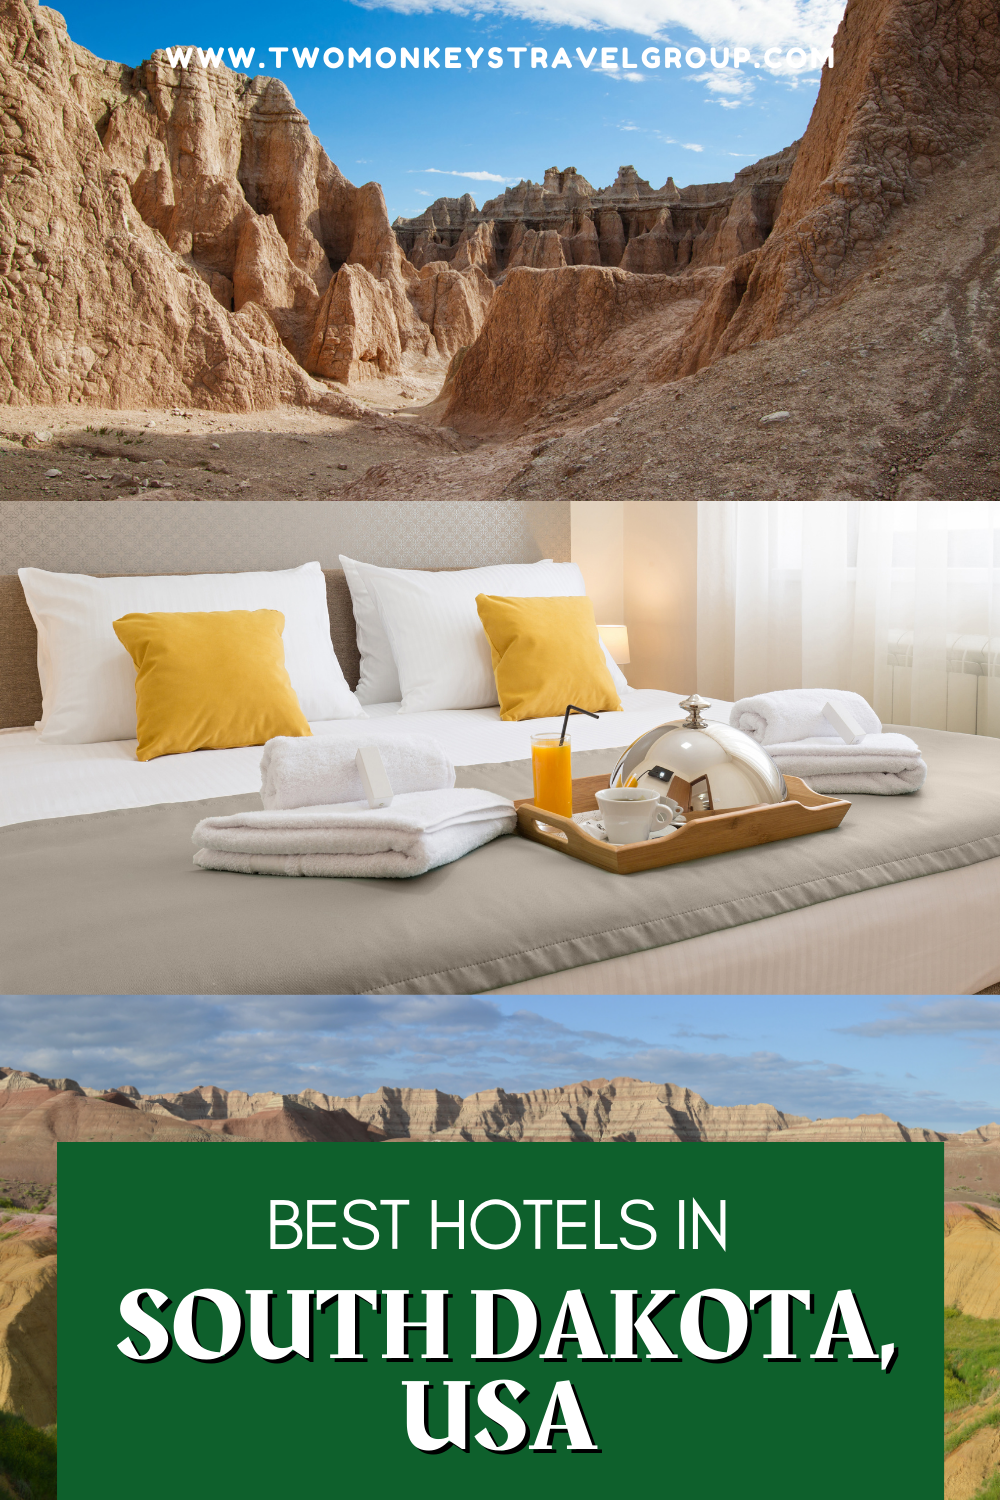 Complete List of Recommended Best Hotels in South Dakota, USA